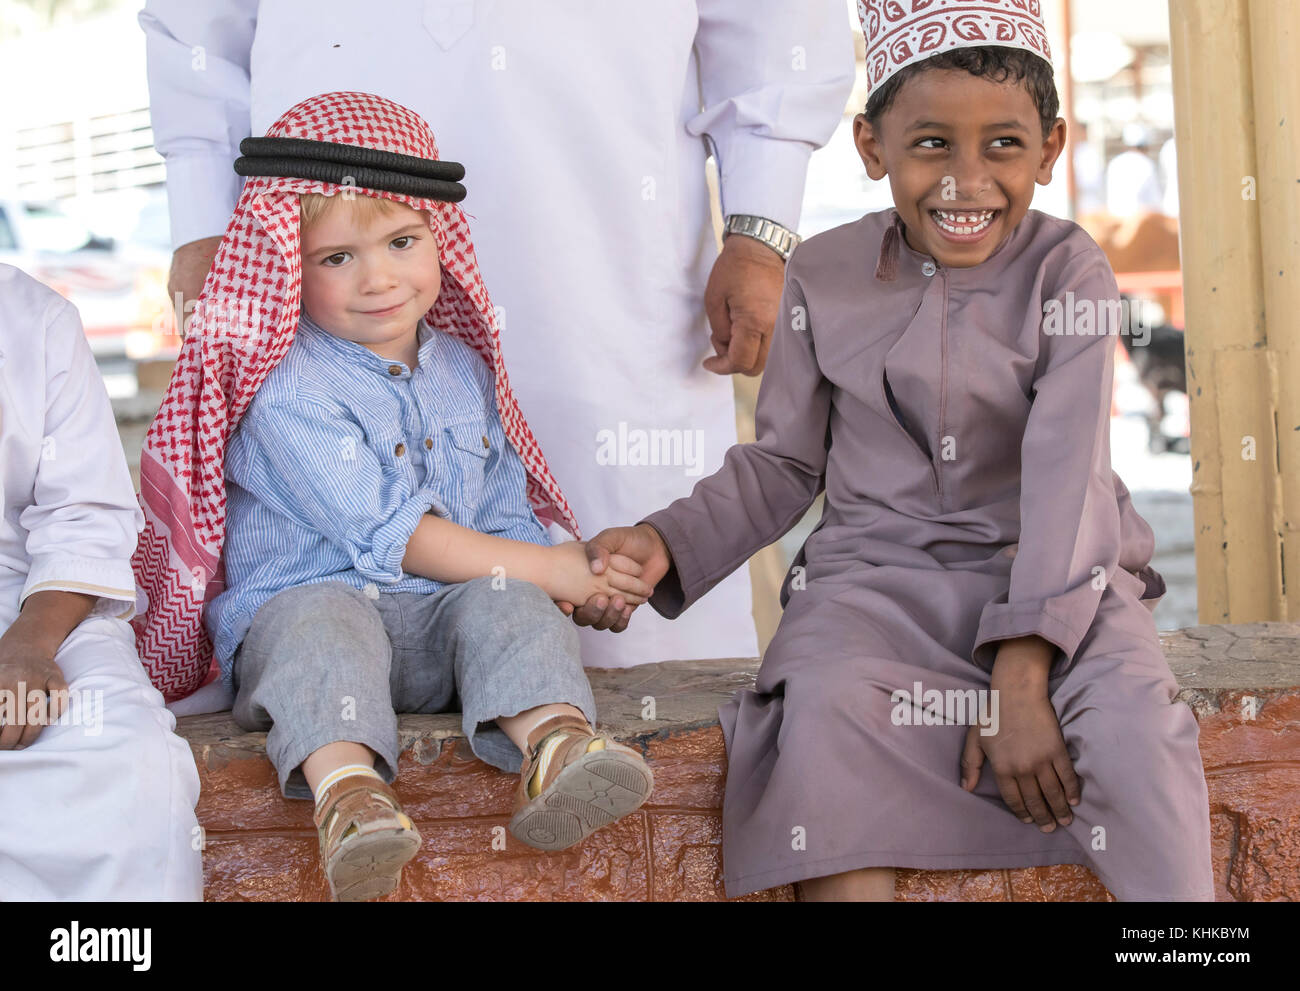 Nizwa, Oman, 10th Nobember 2017: omani kid and european kid shaking hands Stock Photo